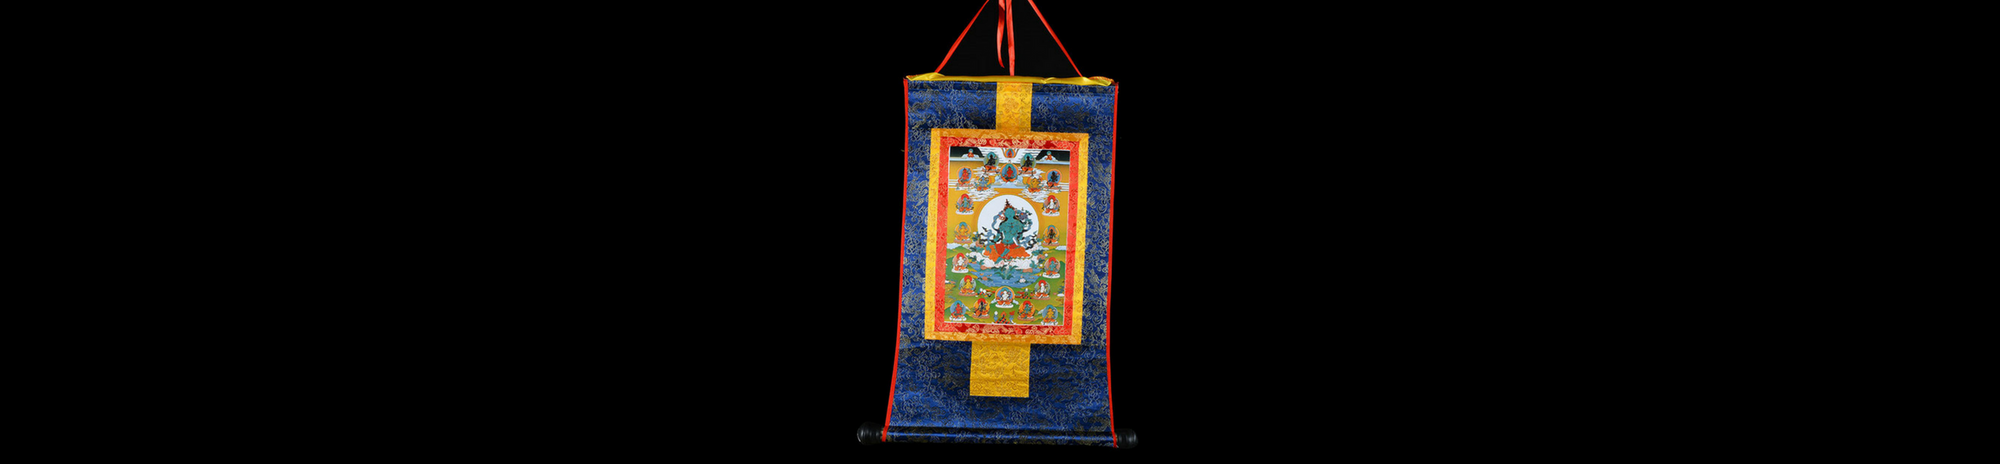 Meaning Symbolism of the Thangka, Kashgar